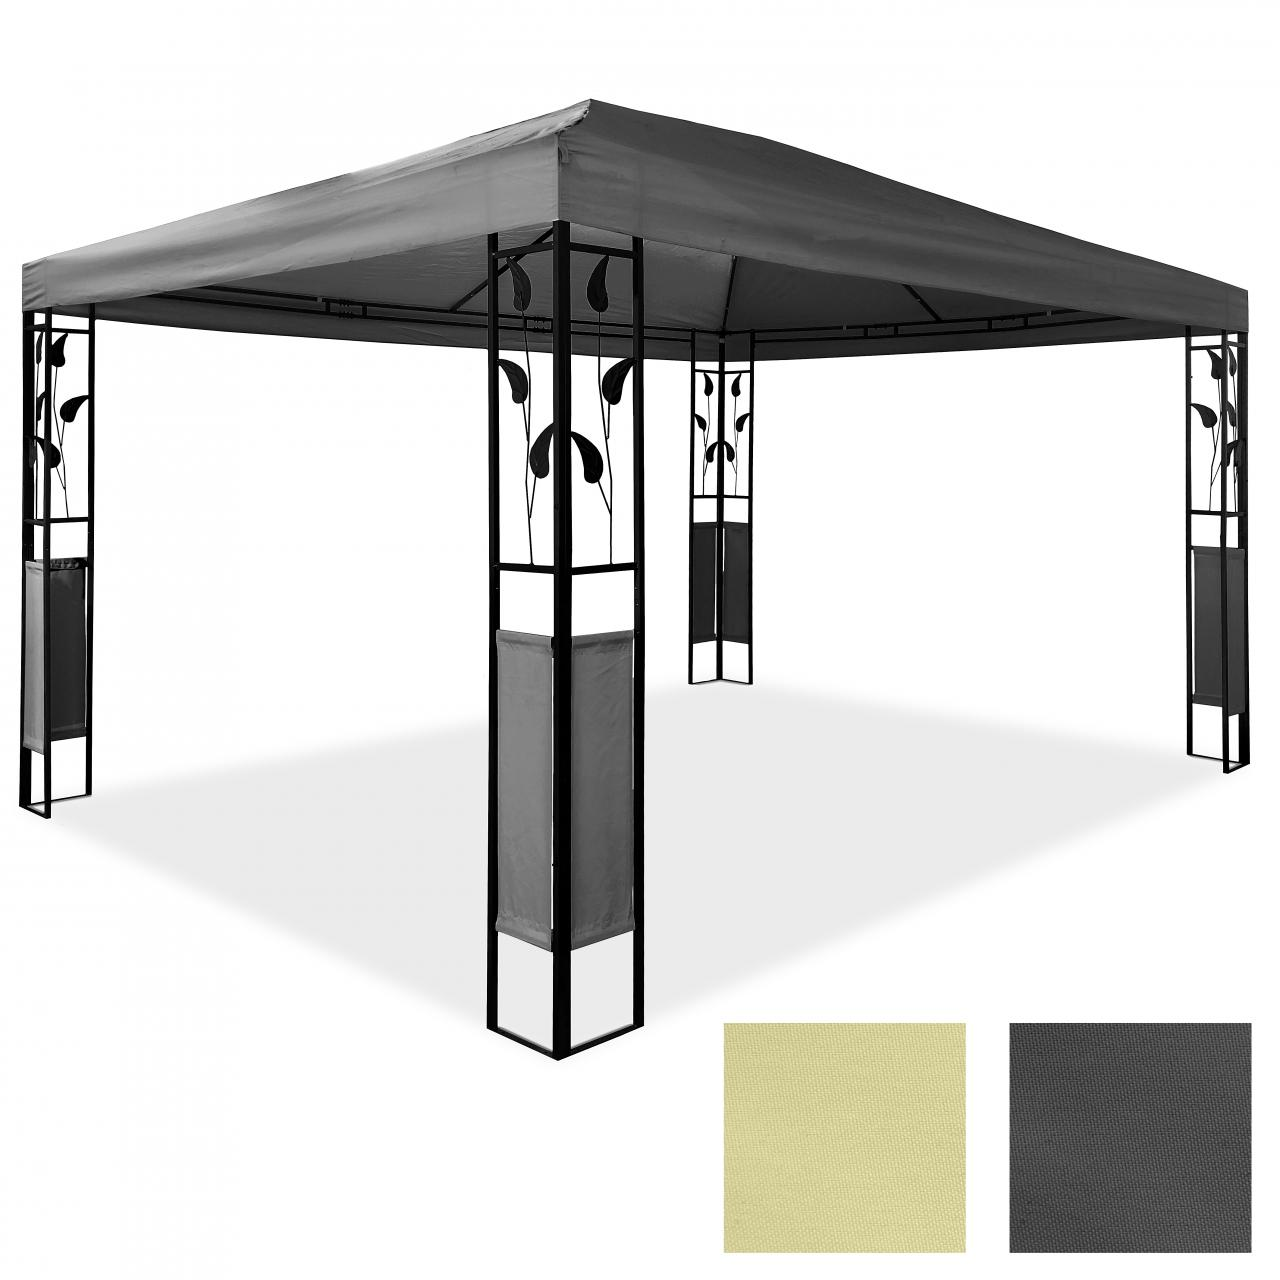 pavillon 3 x 4 m design gartenpavillon gartenzelt festzelt pavilion metall ebay. Black Bedroom Furniture Sets. Home Design Ideas